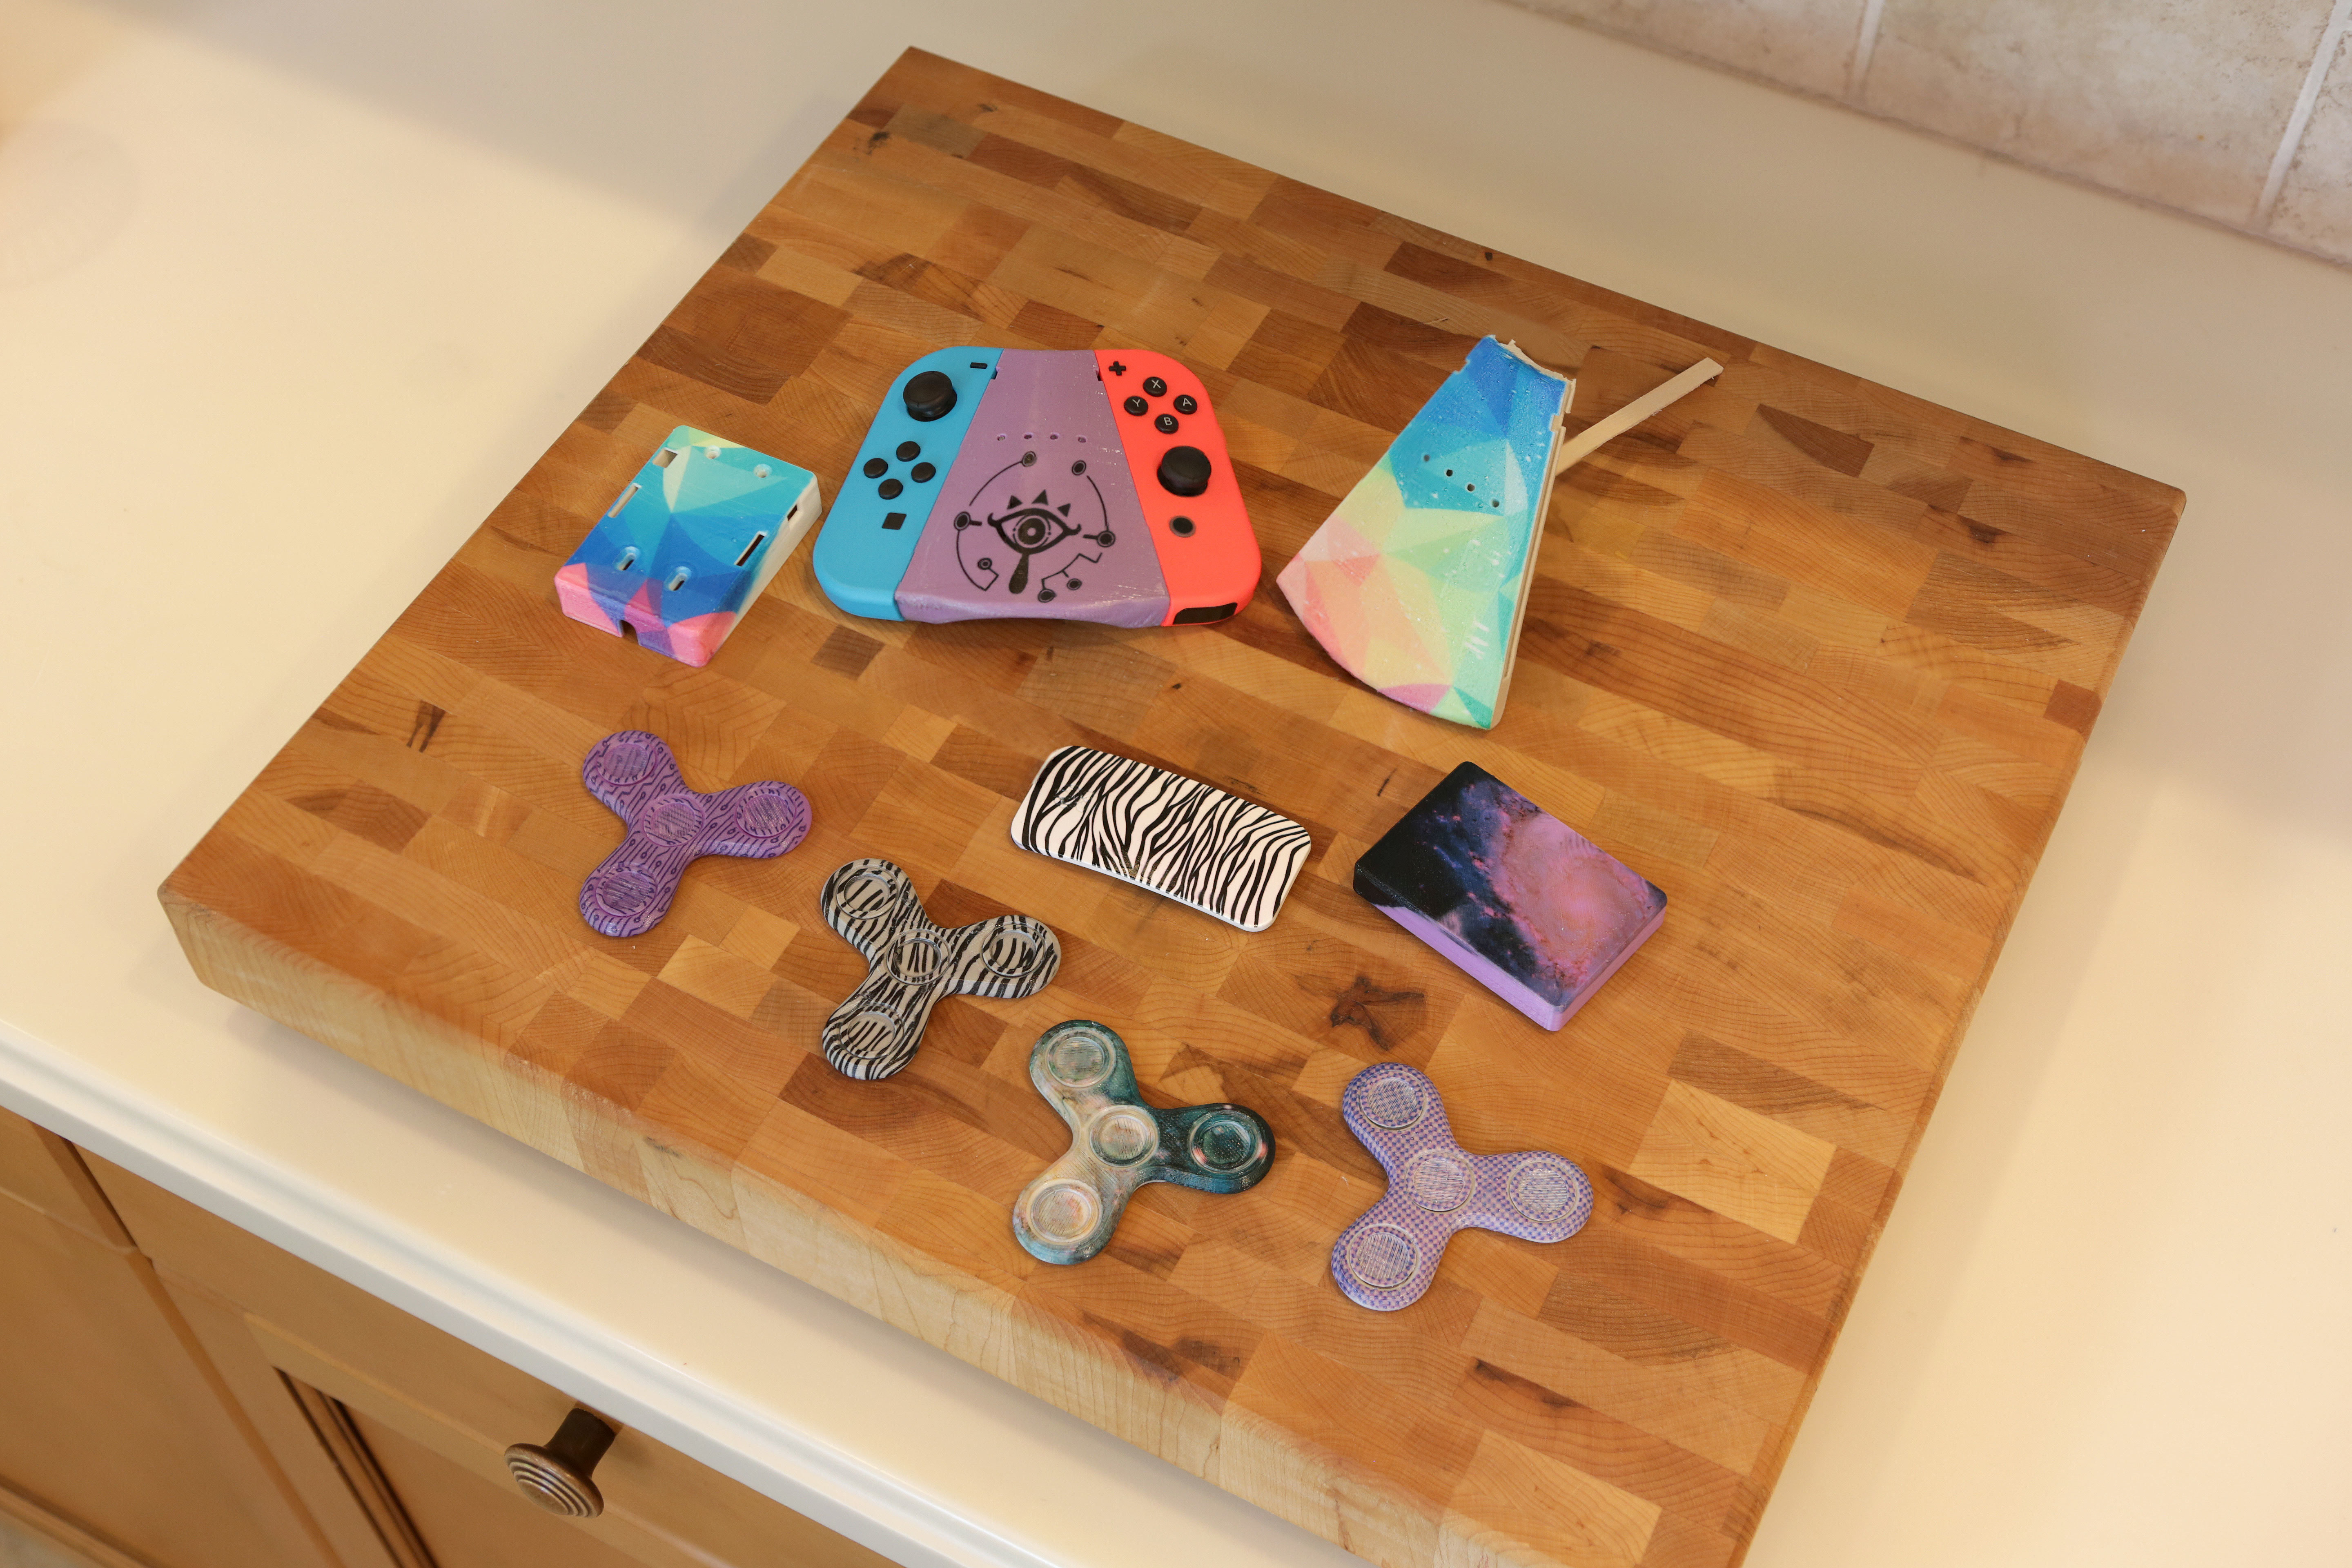 Verrassend 3D Printed Hydro Dipping 3D Prints - Add Graphics to 3D Printing PM-98